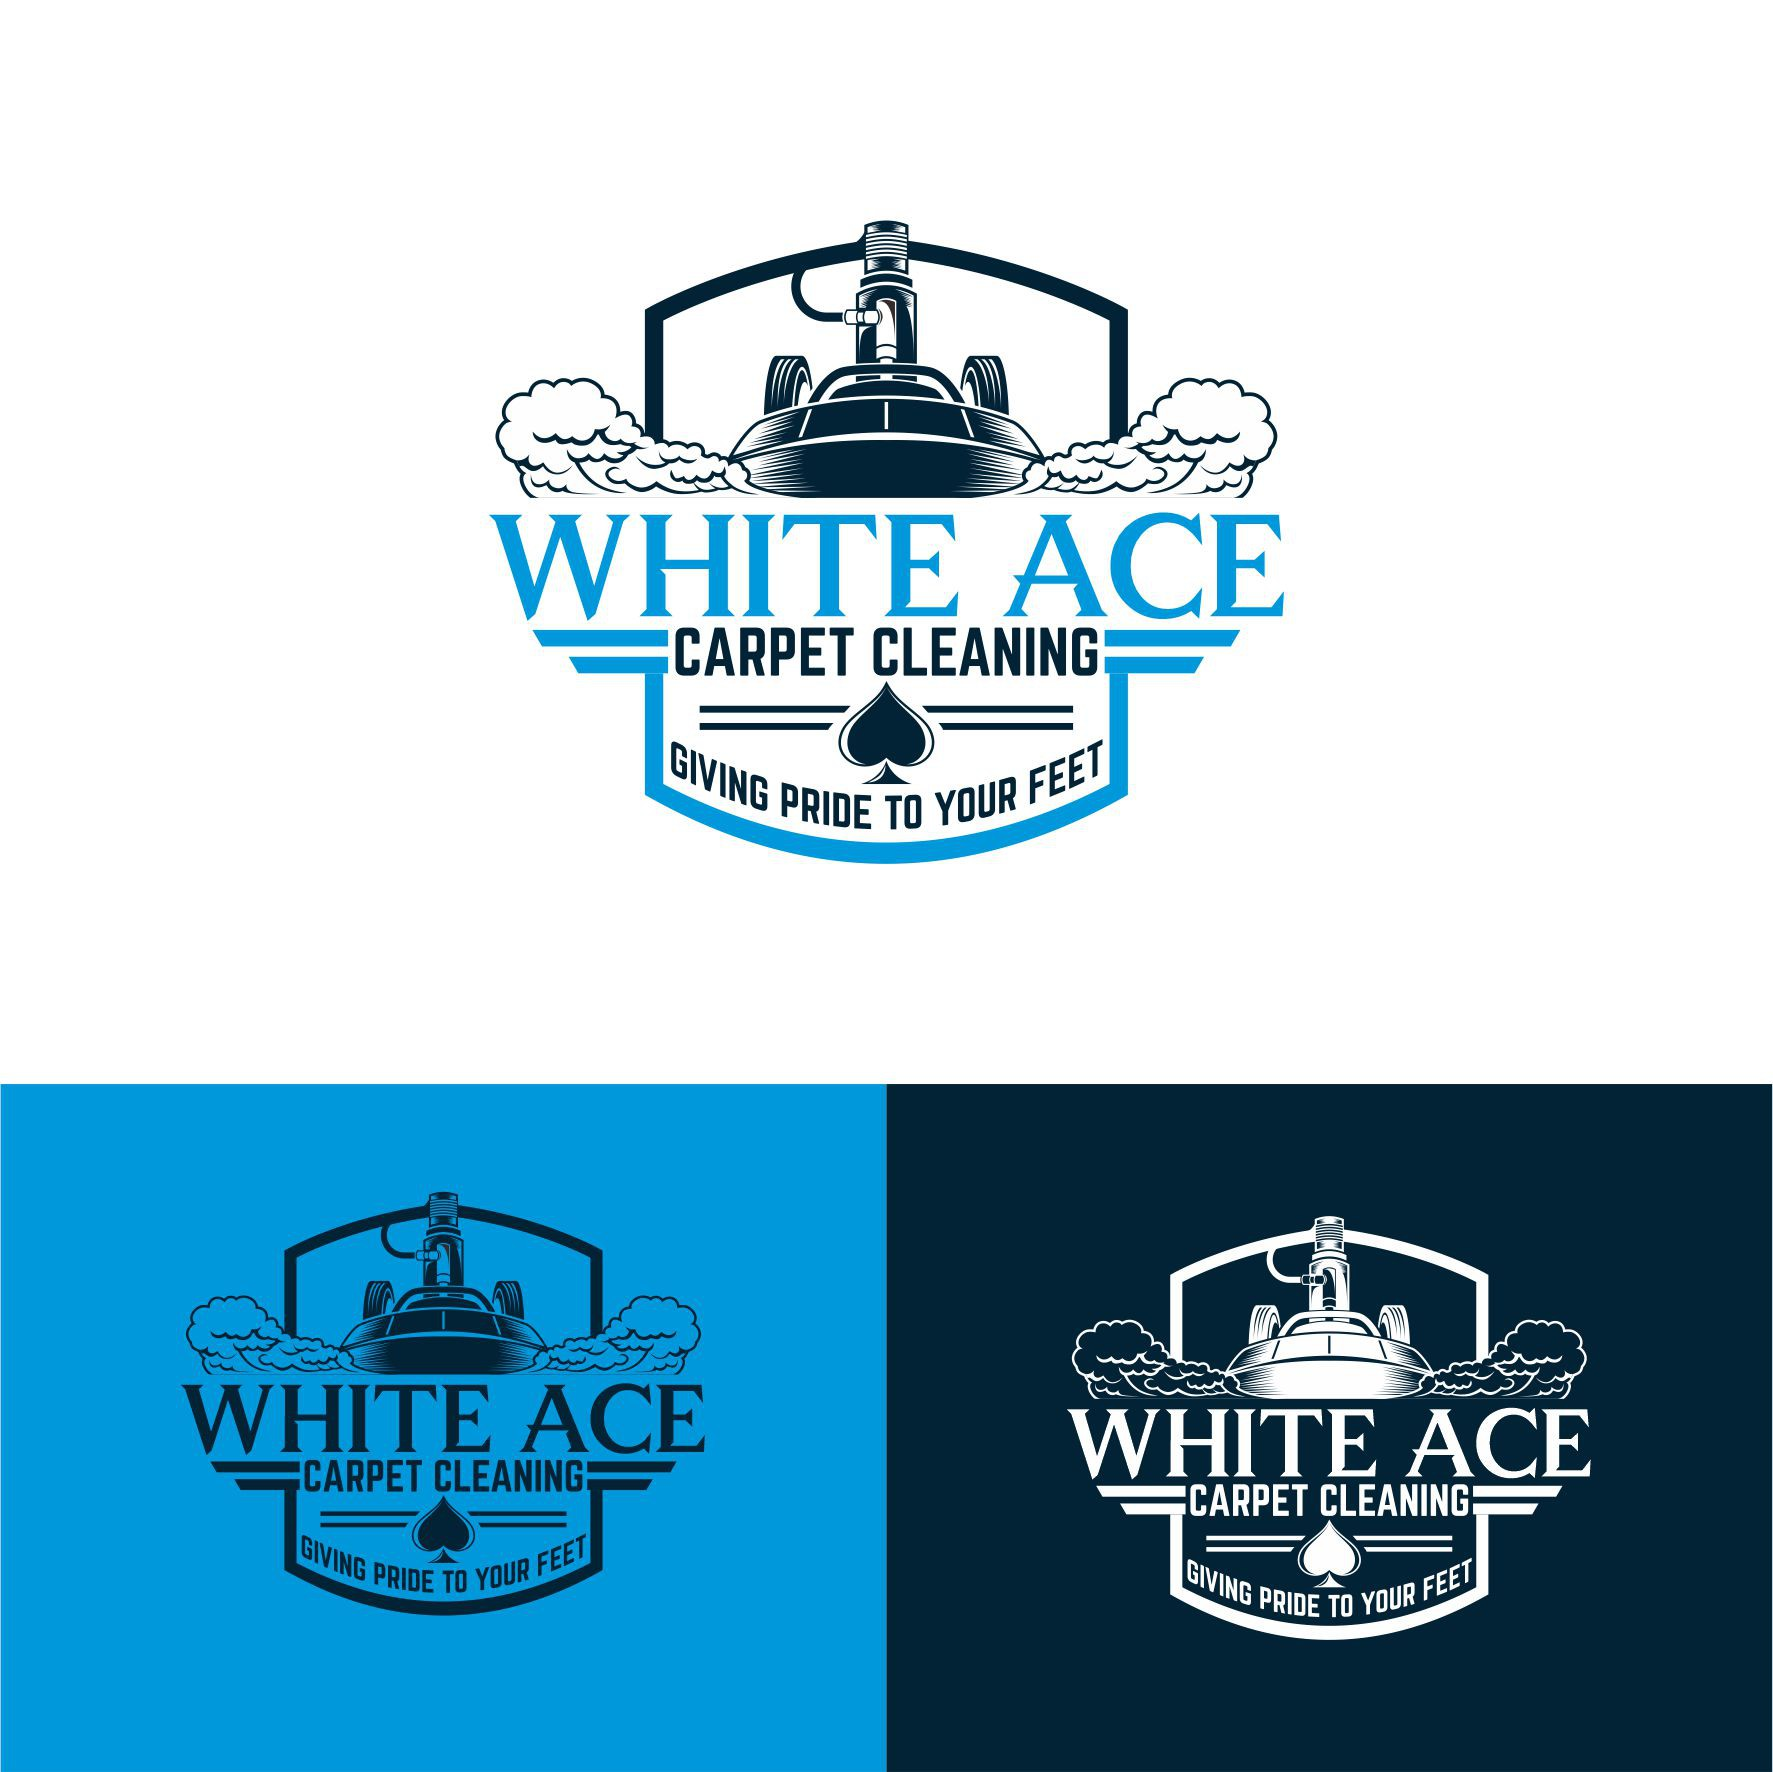 White Ace Carpet Cleaning